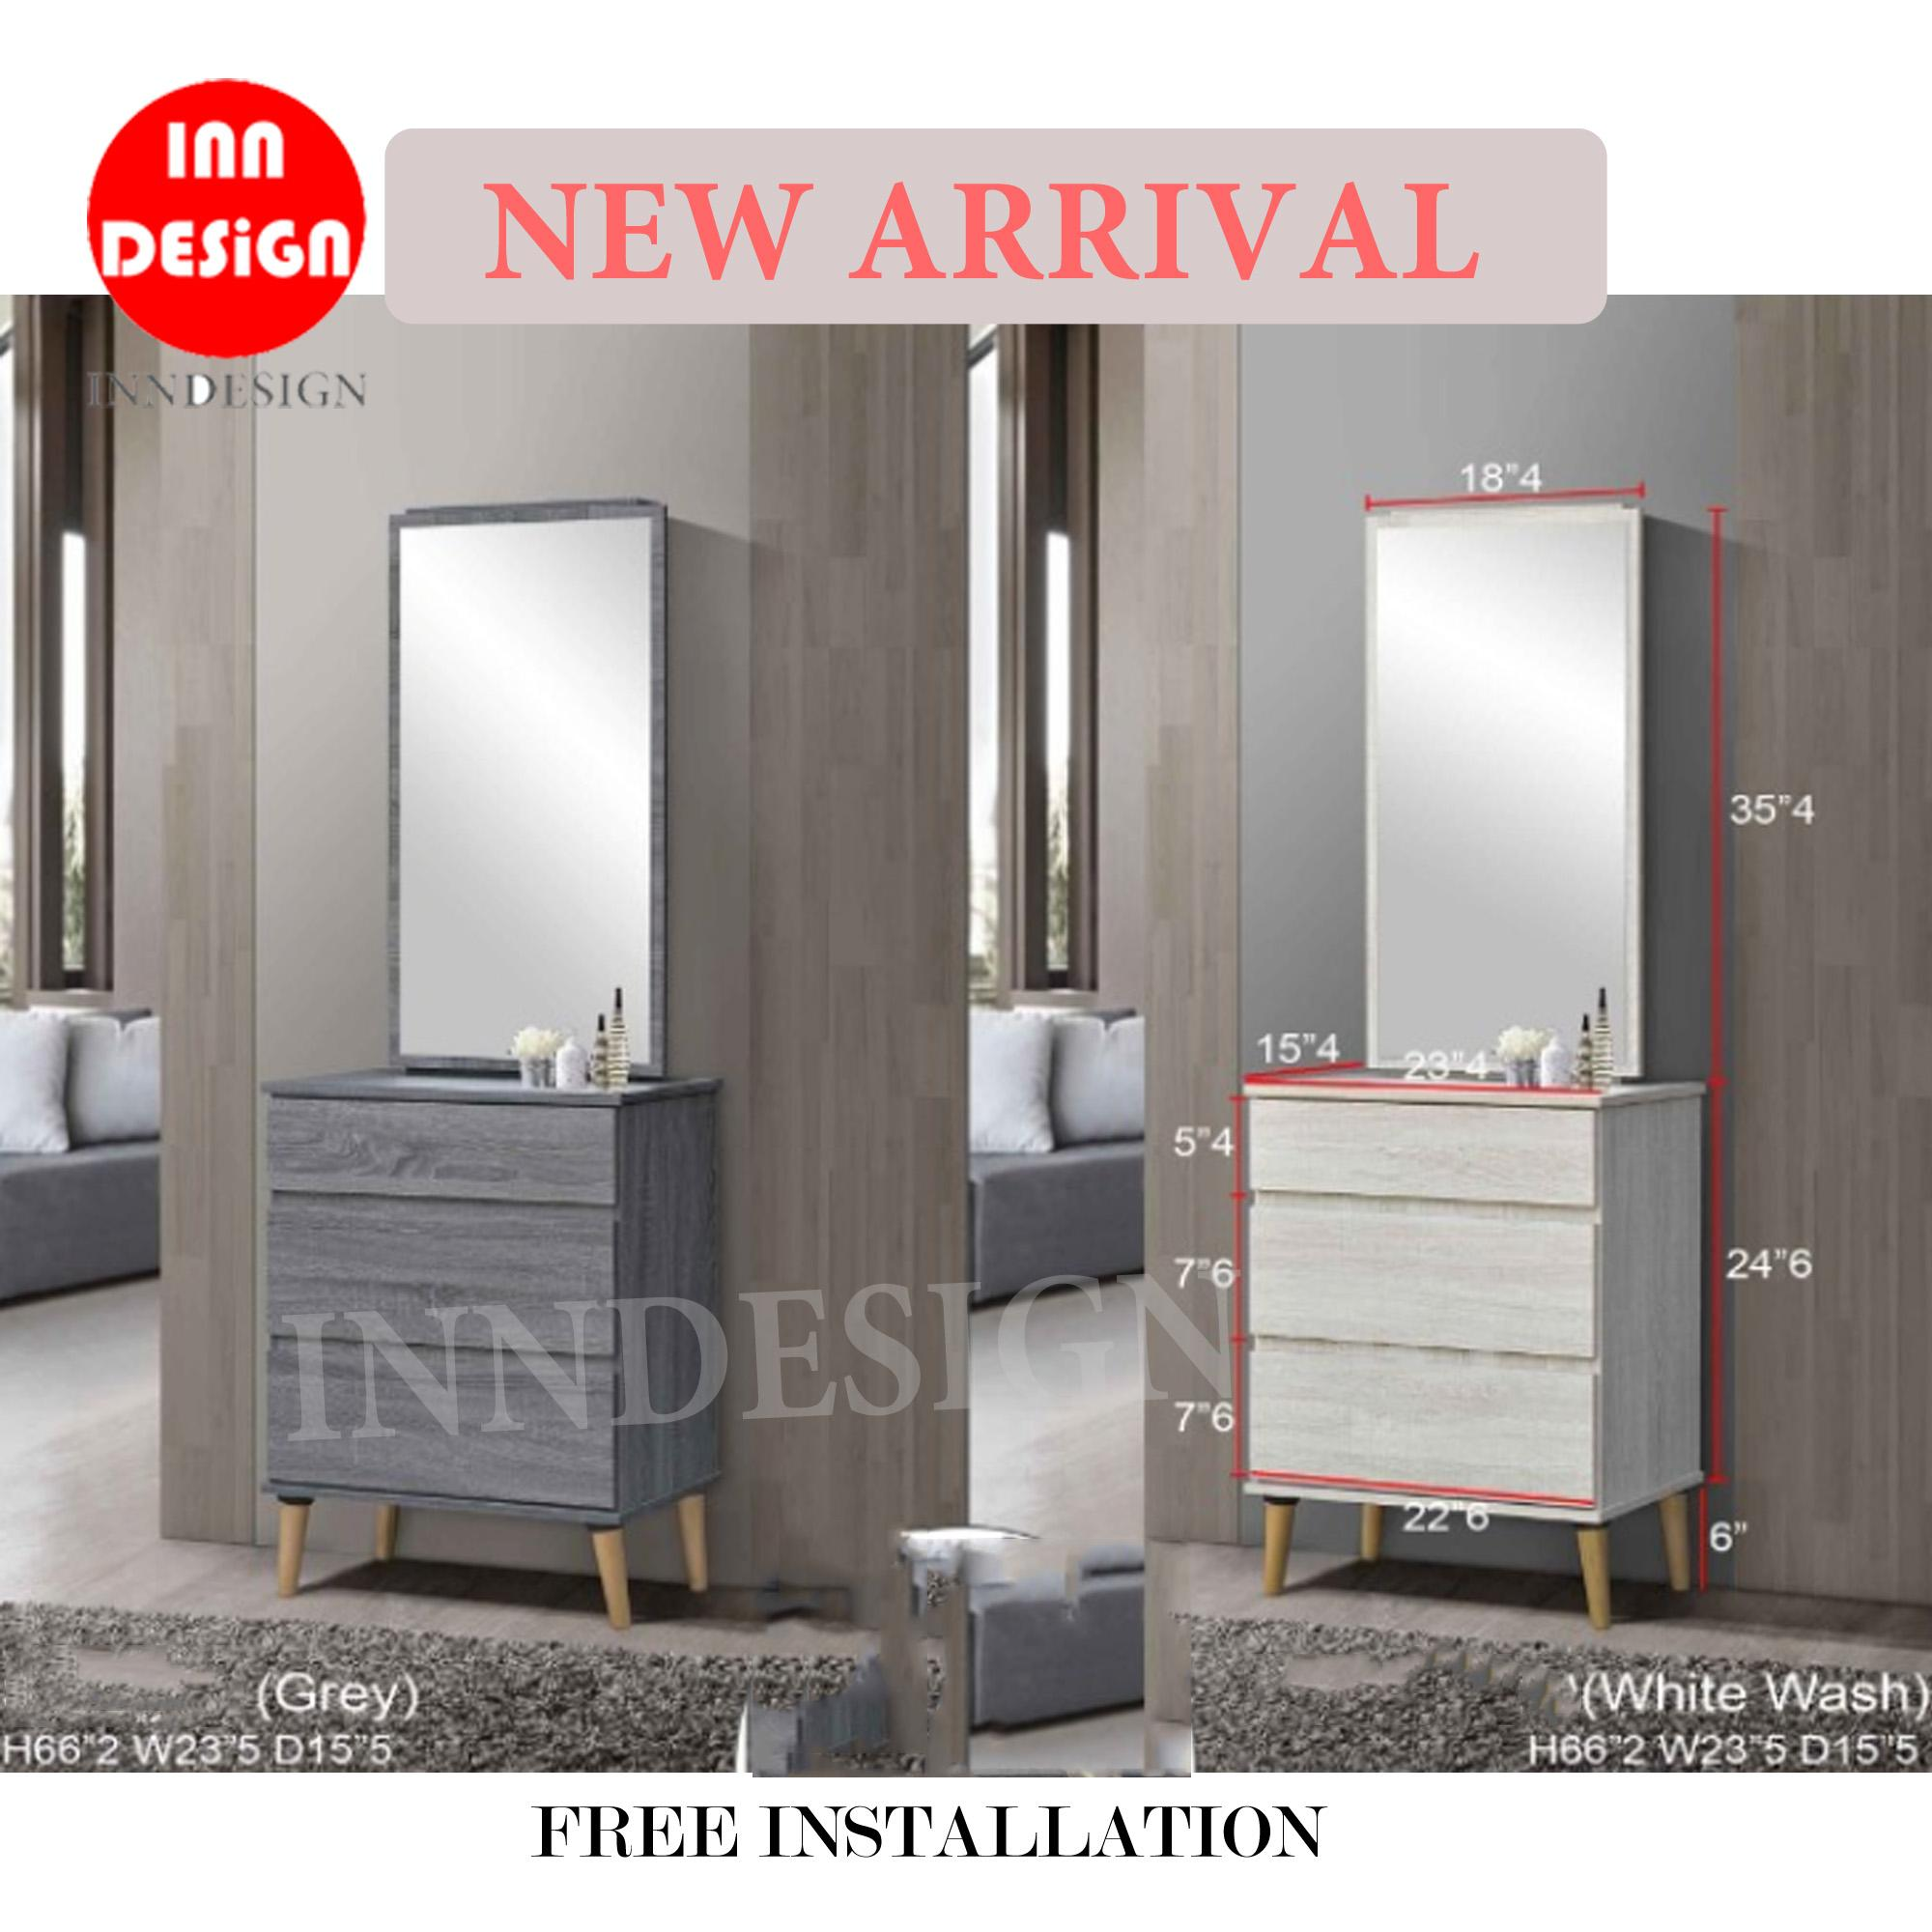 Dixon 2019 [New Arrival] Dressing Table [Free Installation] [Deliver Within 2 Working Days]